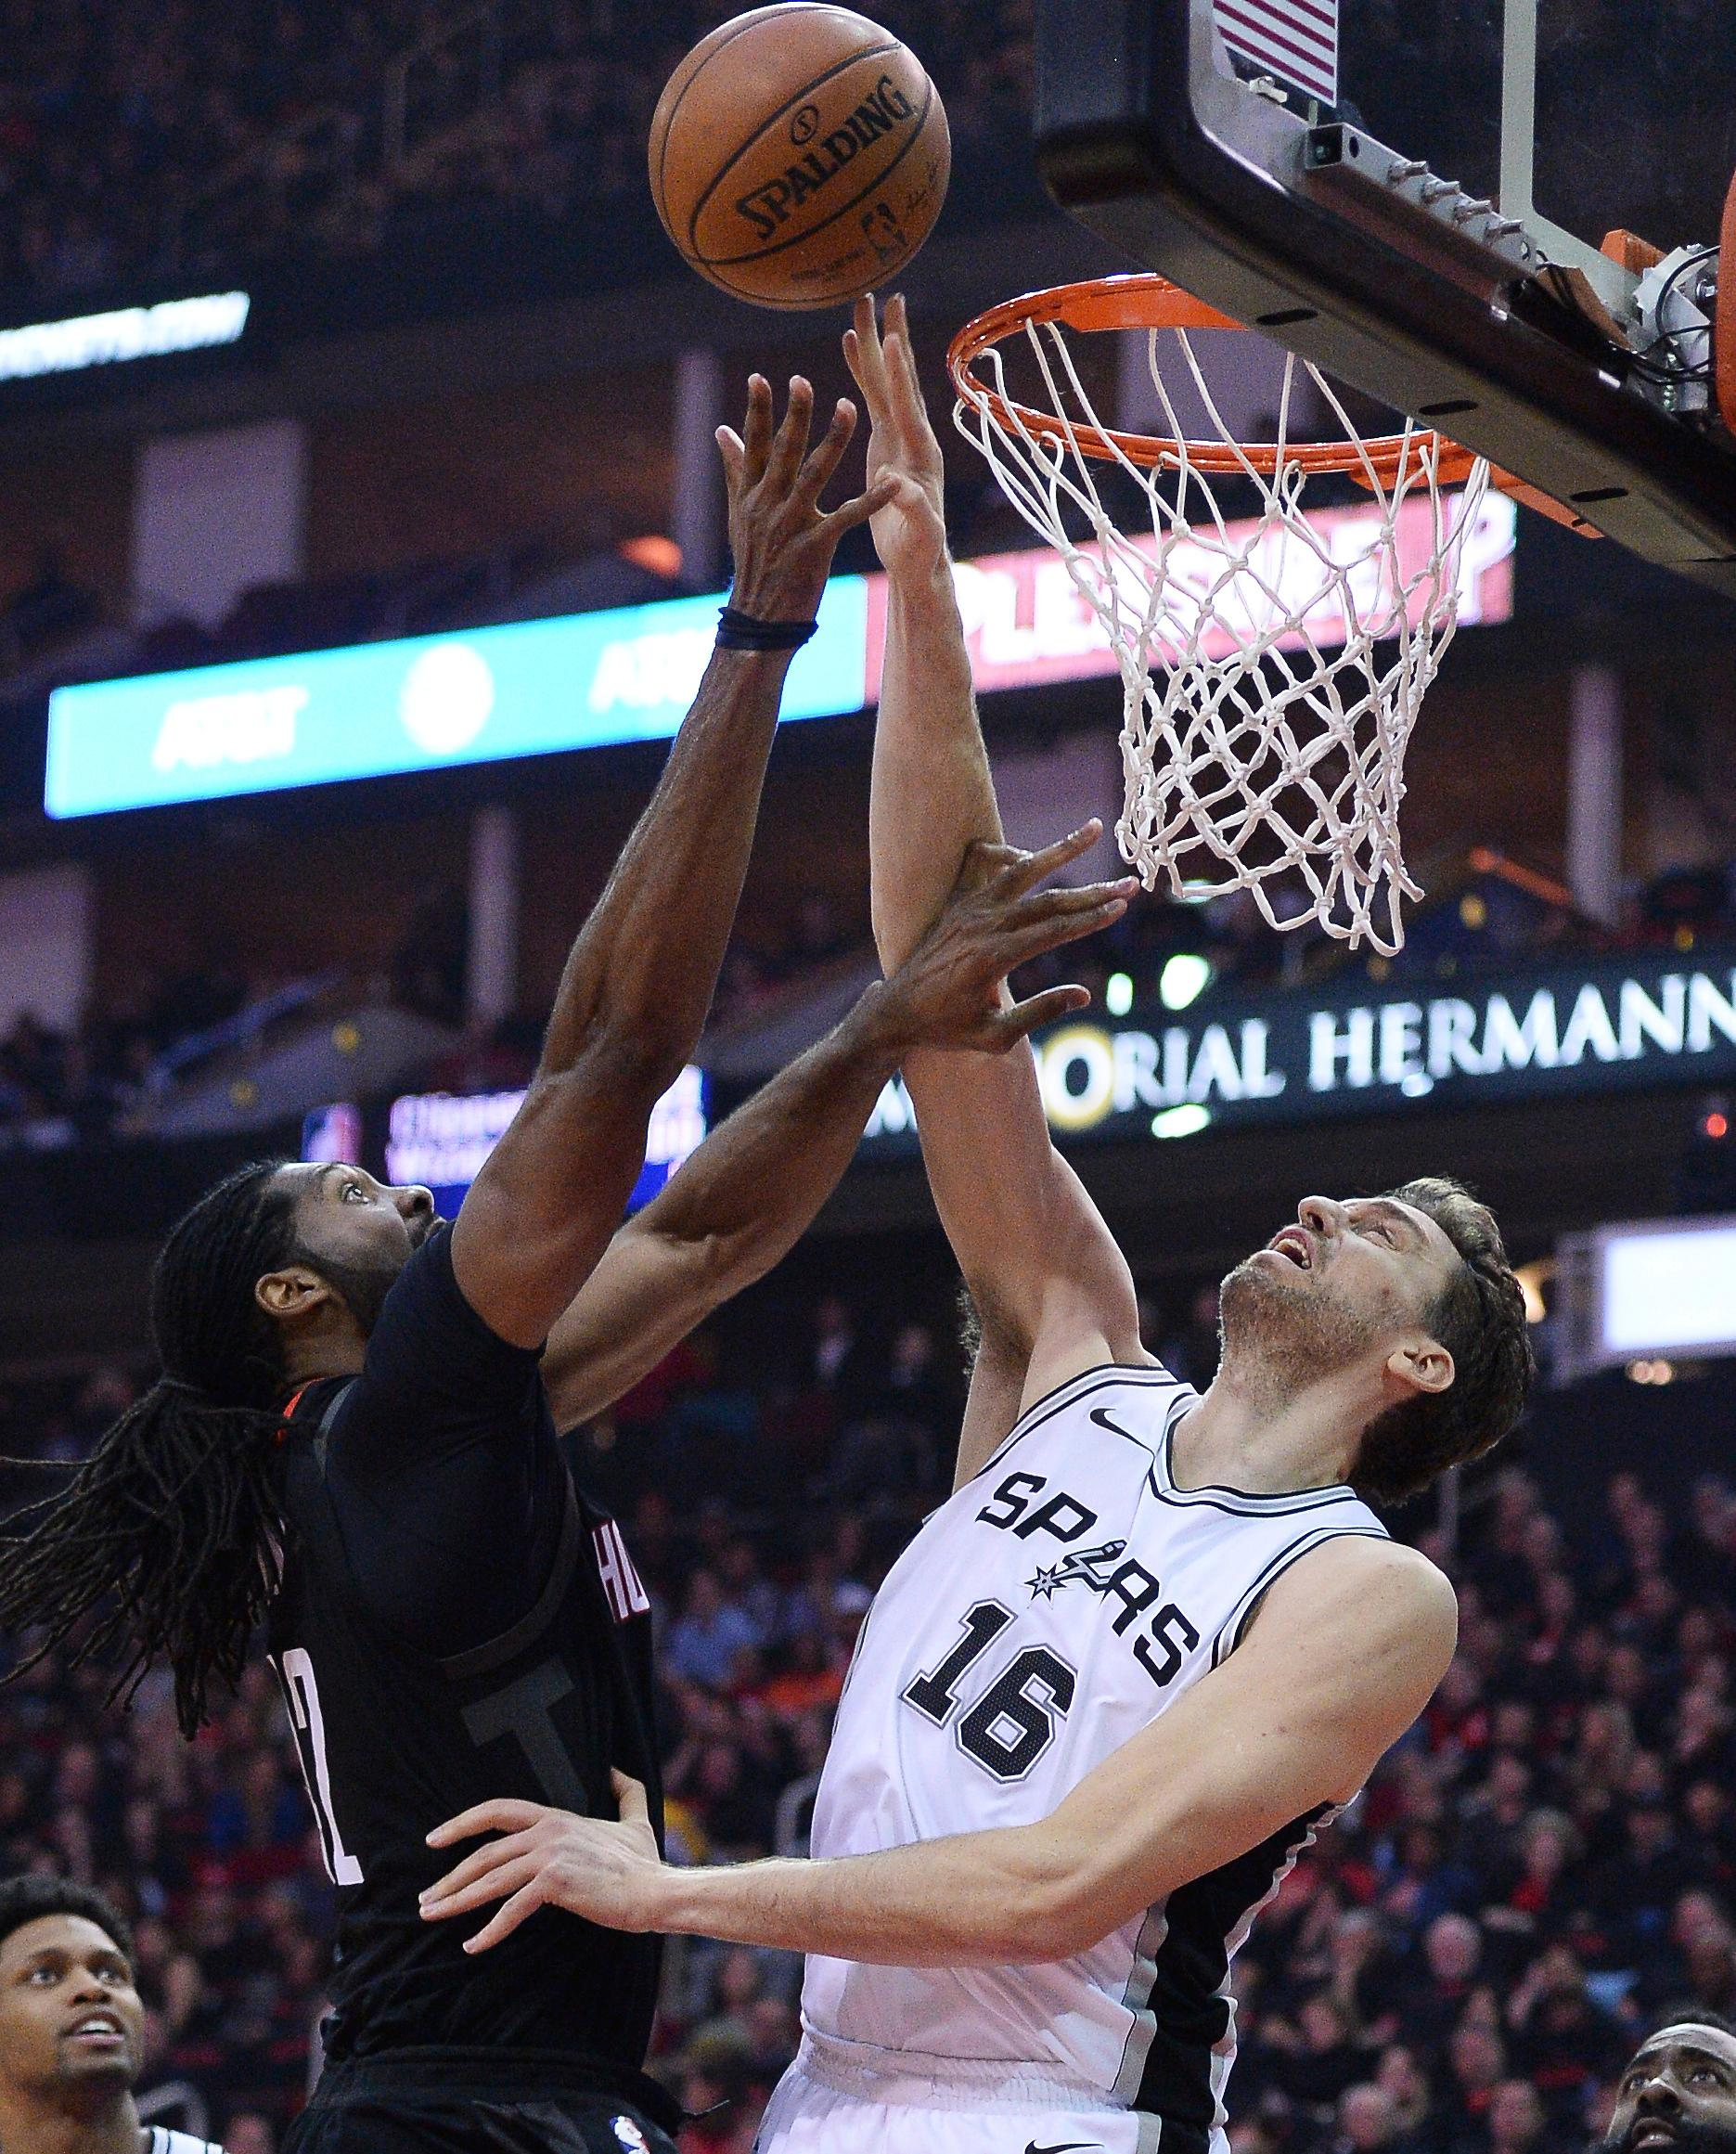 San Antonio Spurs center Pau Gasol (16) blocks a shot by Houston Rockets Nene (42) in the first half of an NBA basketball game Friday, Dec. 15, 2017, in Houston. (AP Photo/George Bridges)